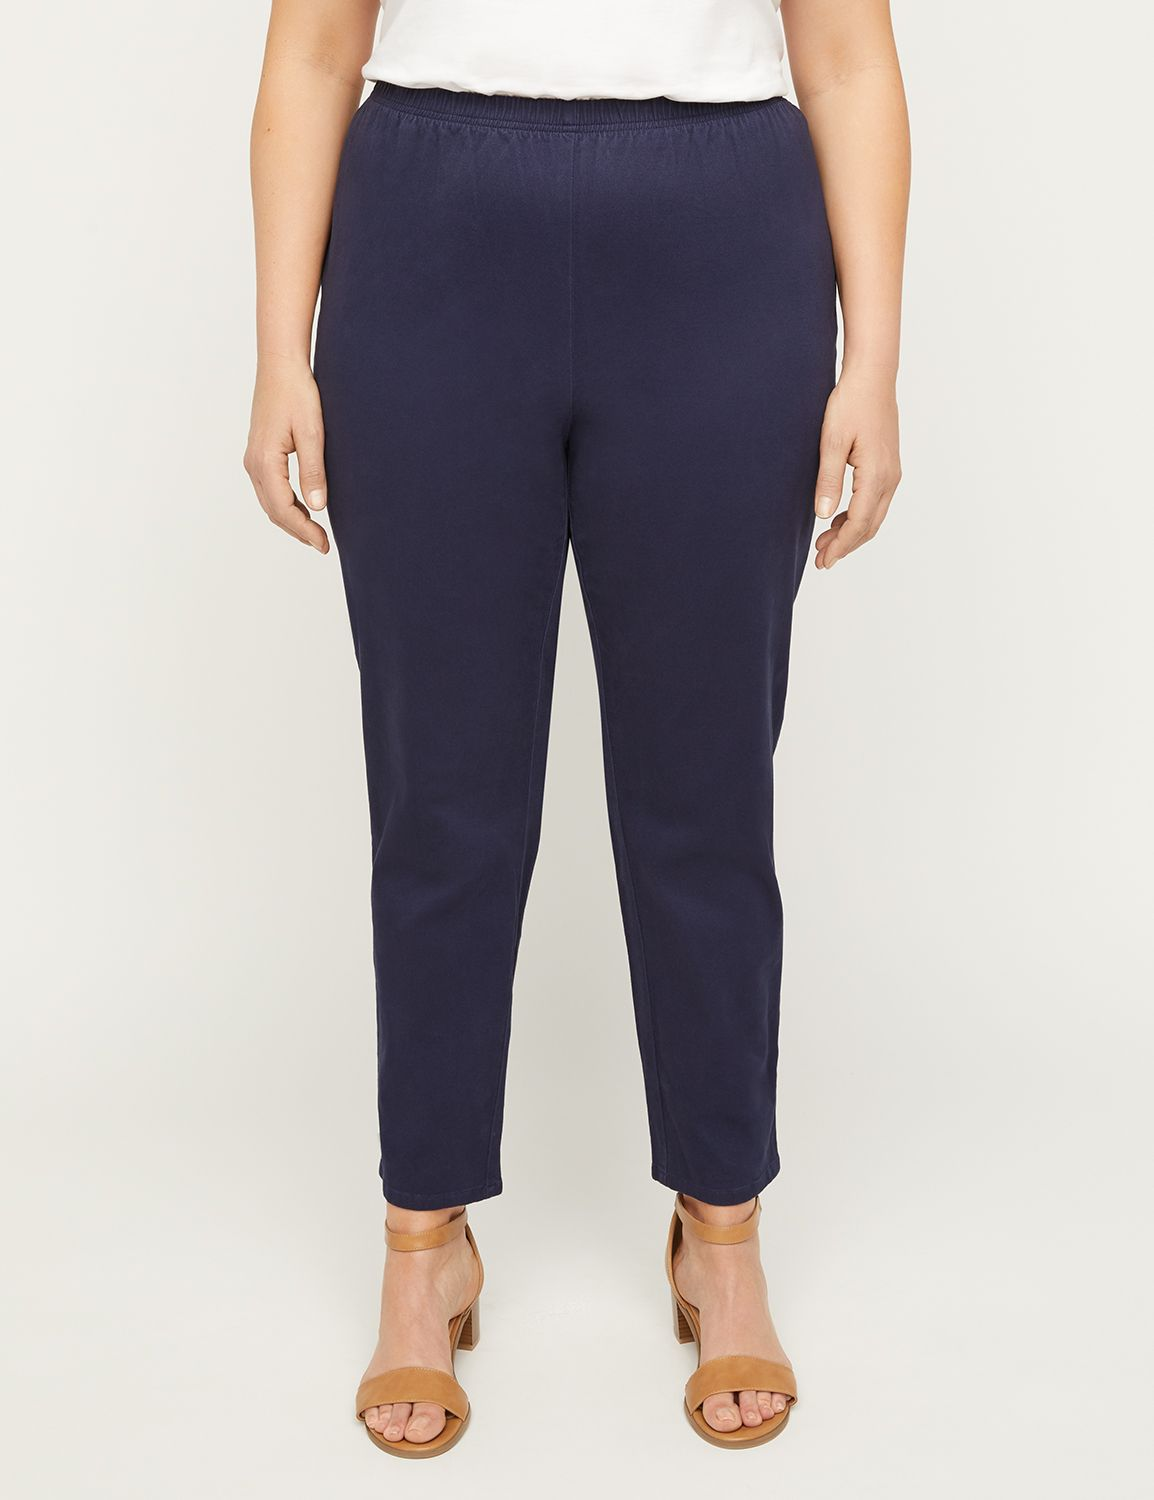 Everyday Pant Everyday Pant MP-201414760